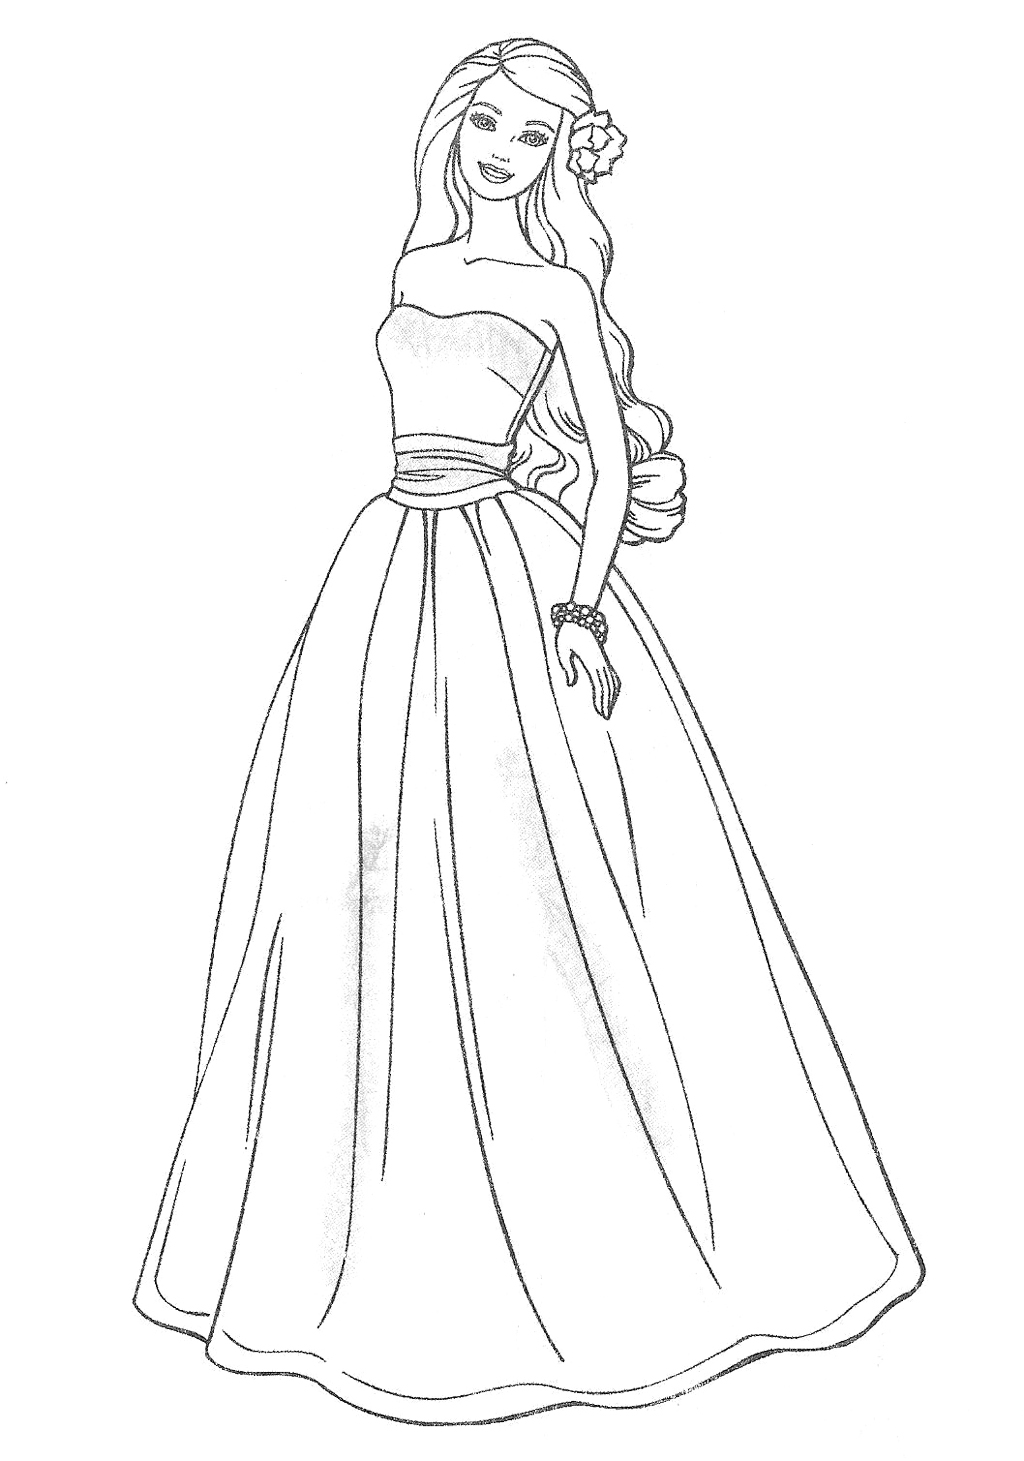 pictures of girls coloring pages dress coloring pages to download and print for free pages coloring girls pictures of